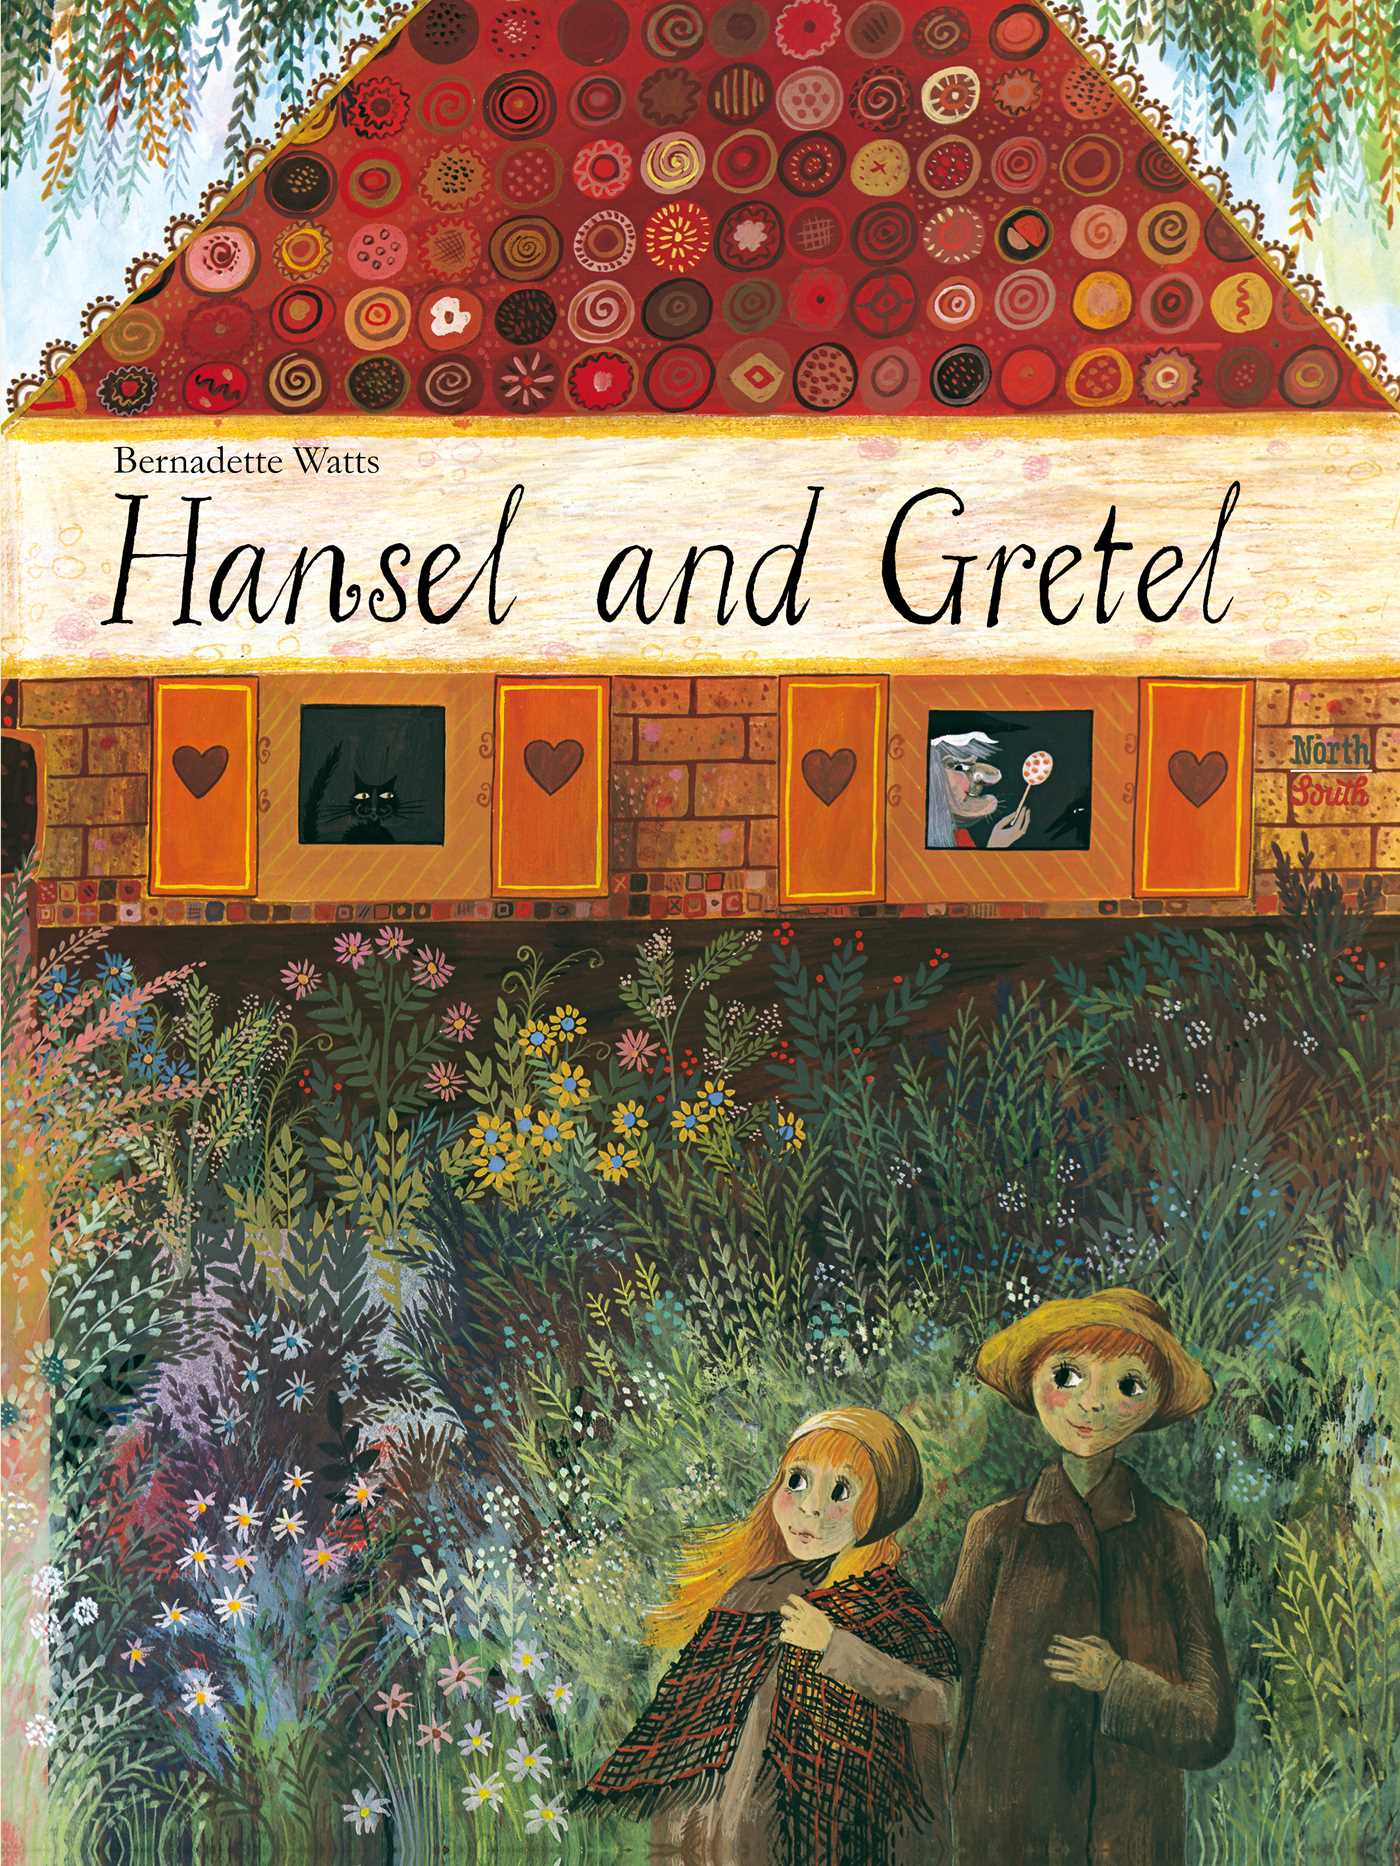 Hansel and gretel 9780735843271 hr